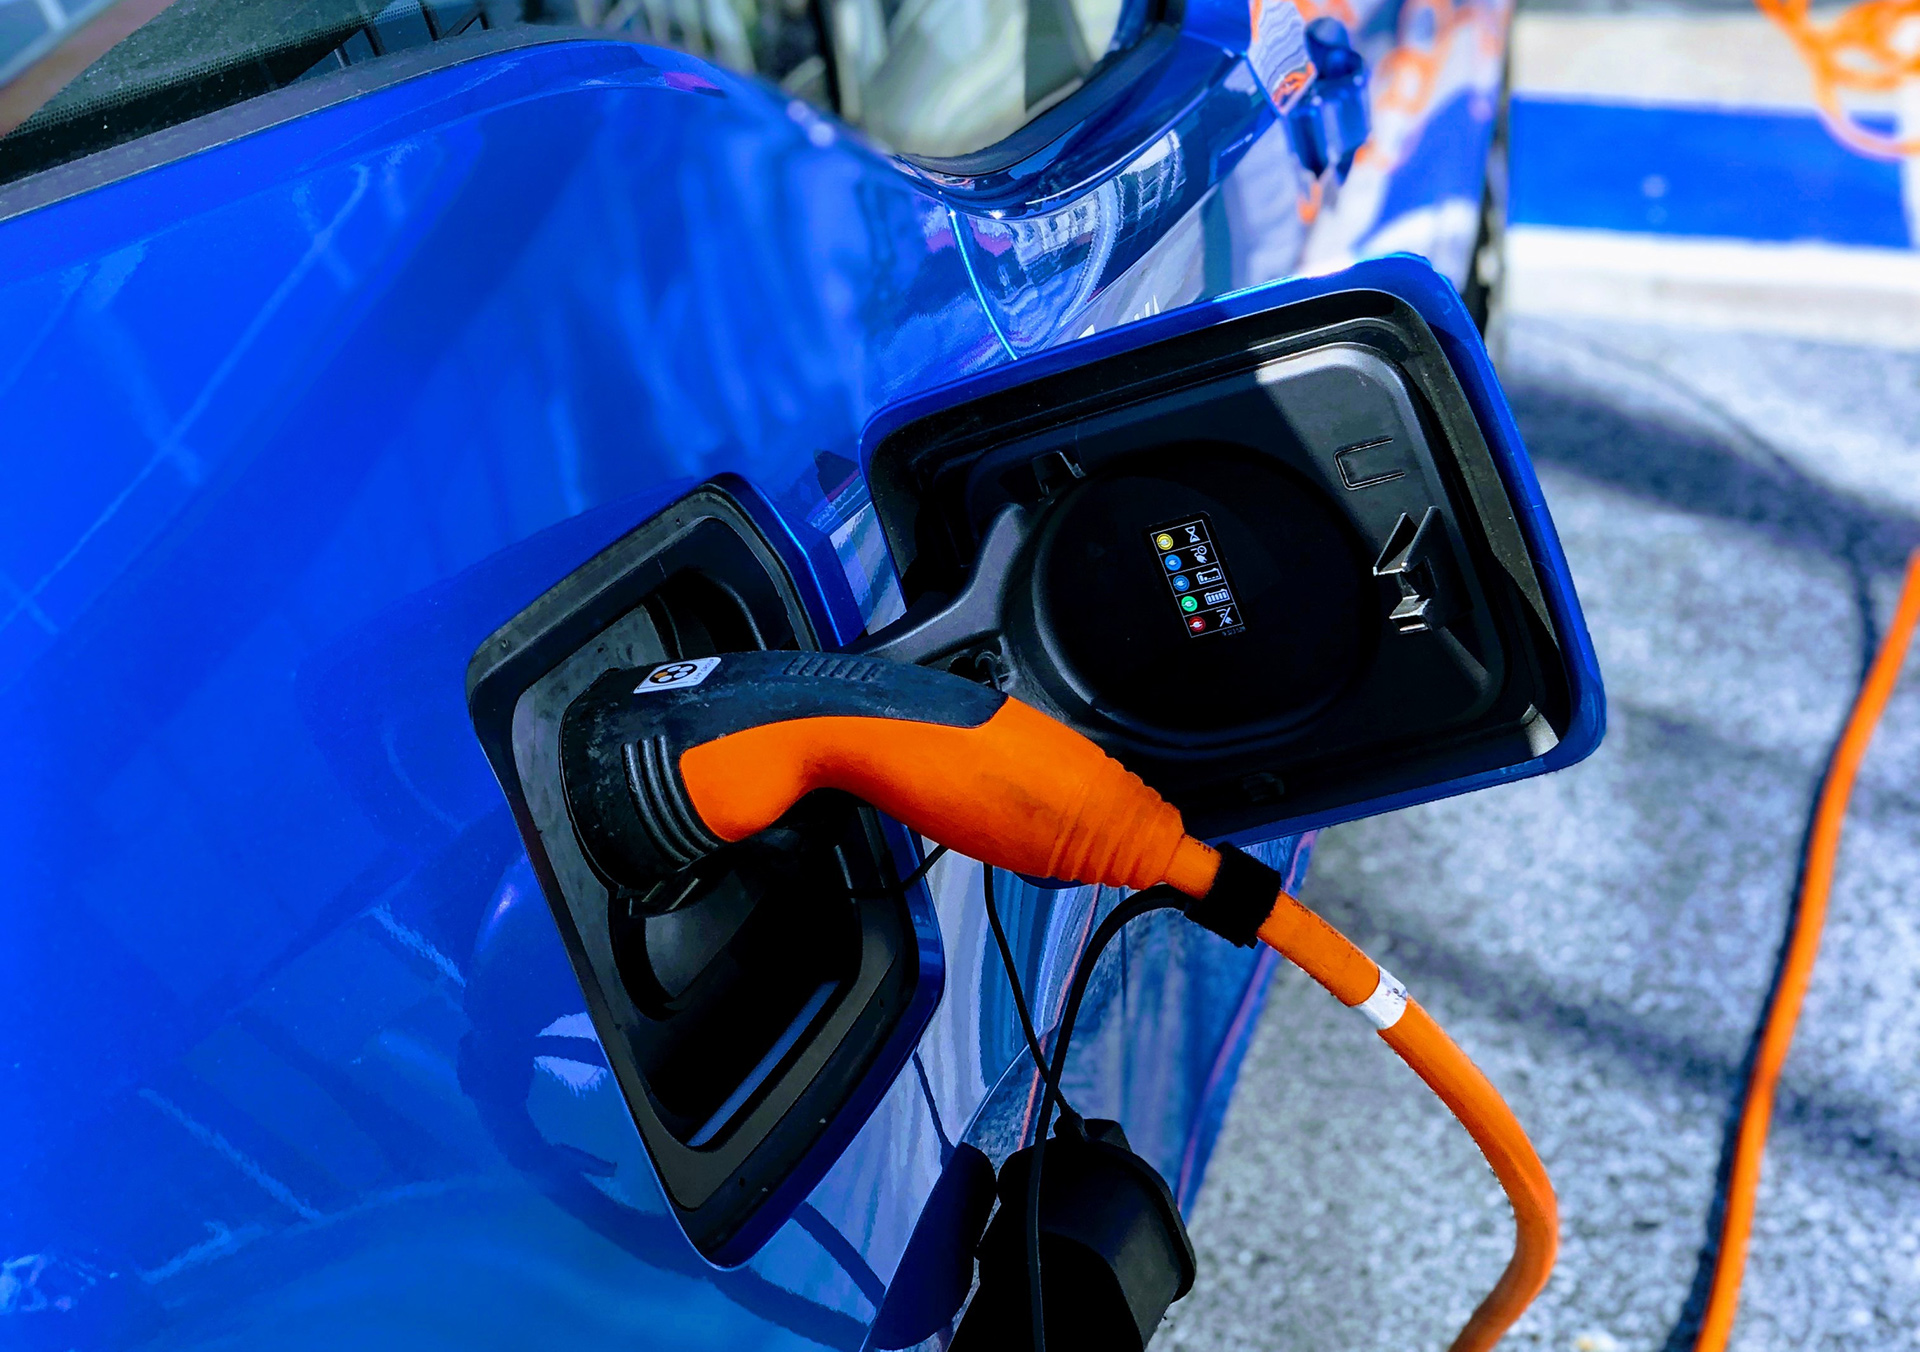 Electric vehicles – understanding the electricity